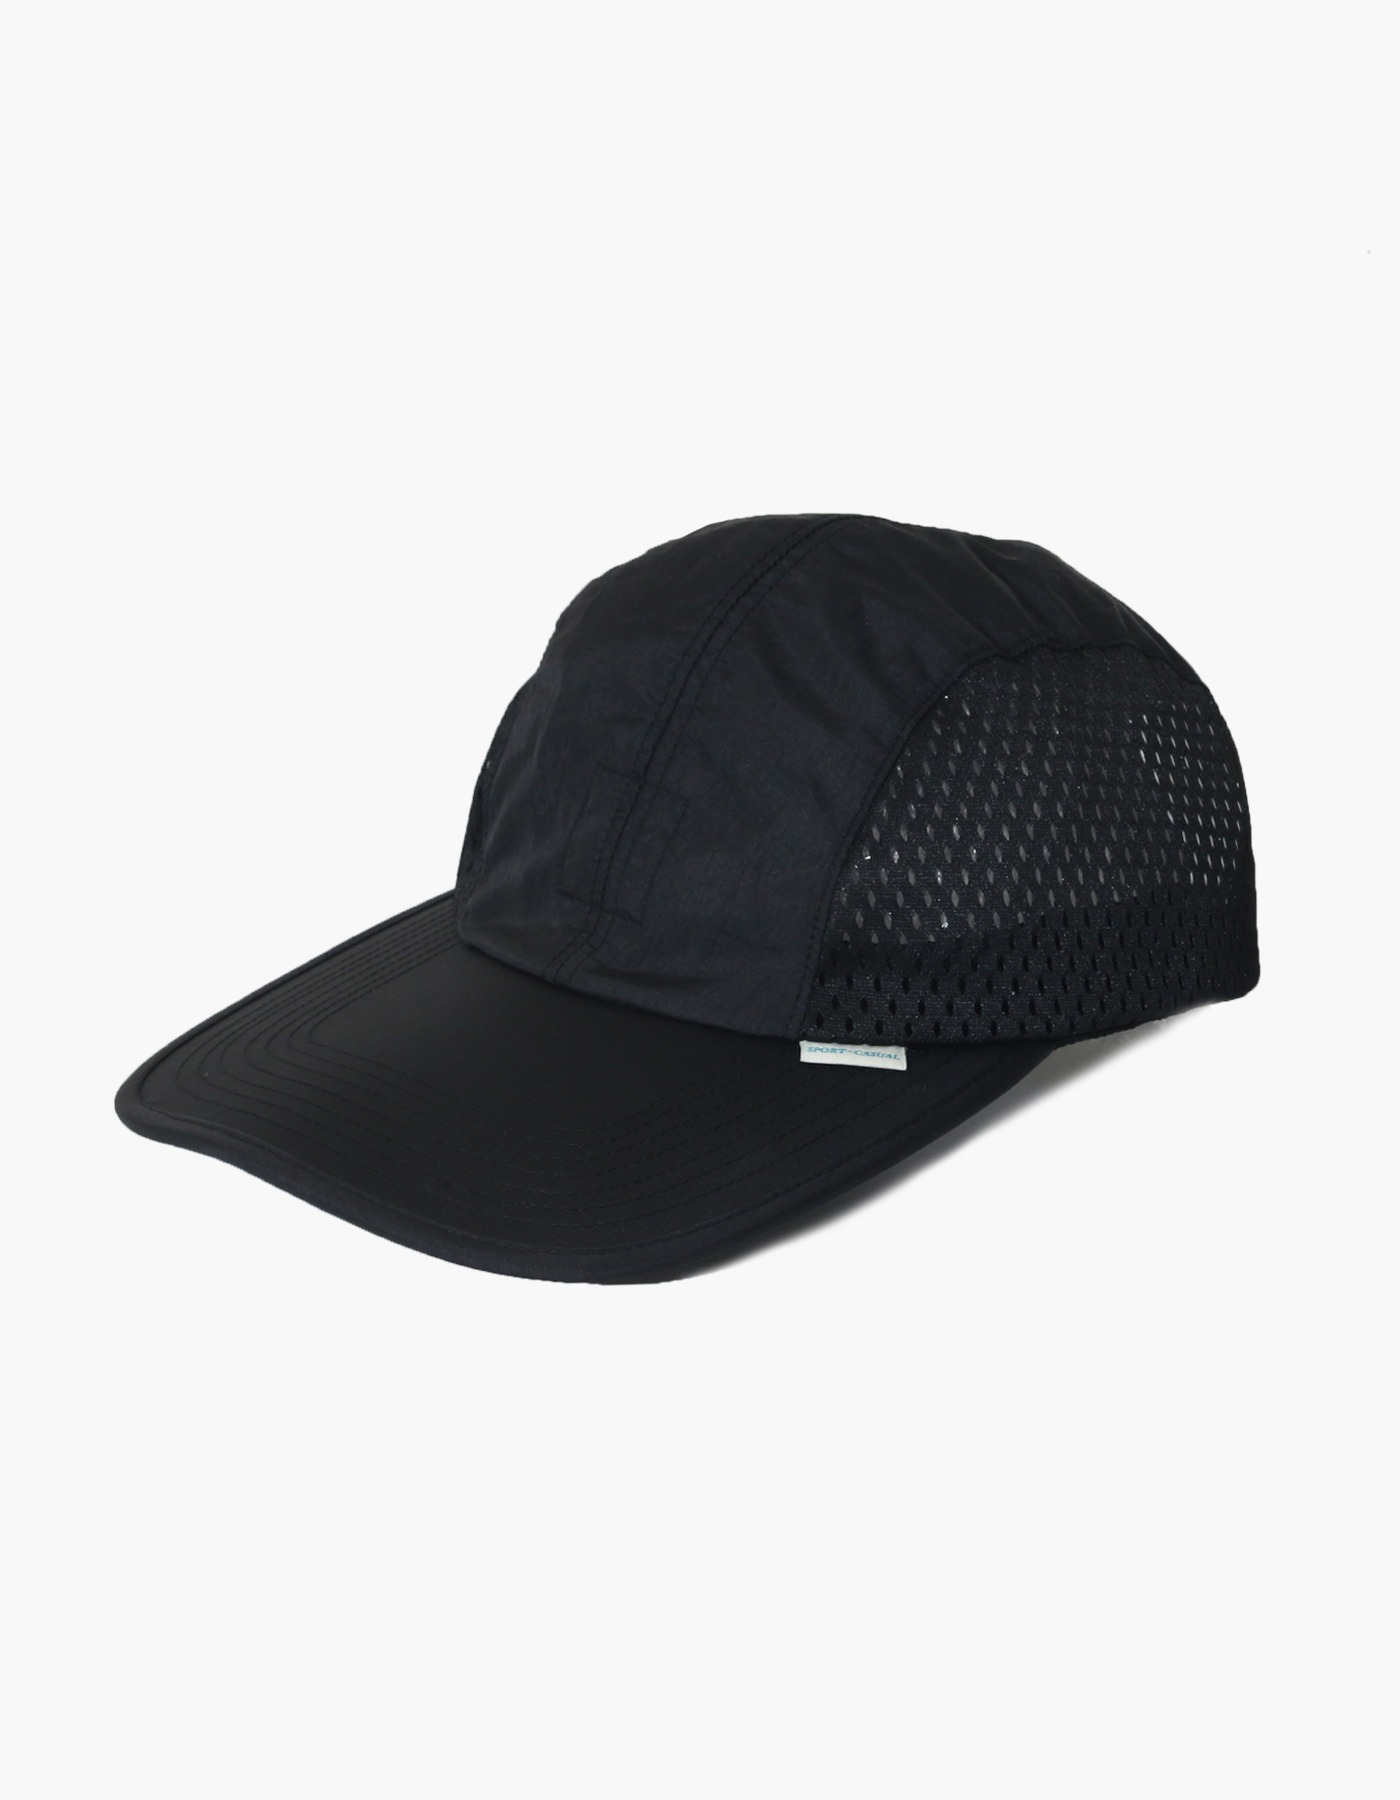 NYLON DIAMOND WASHER MESH CAP / BLACK